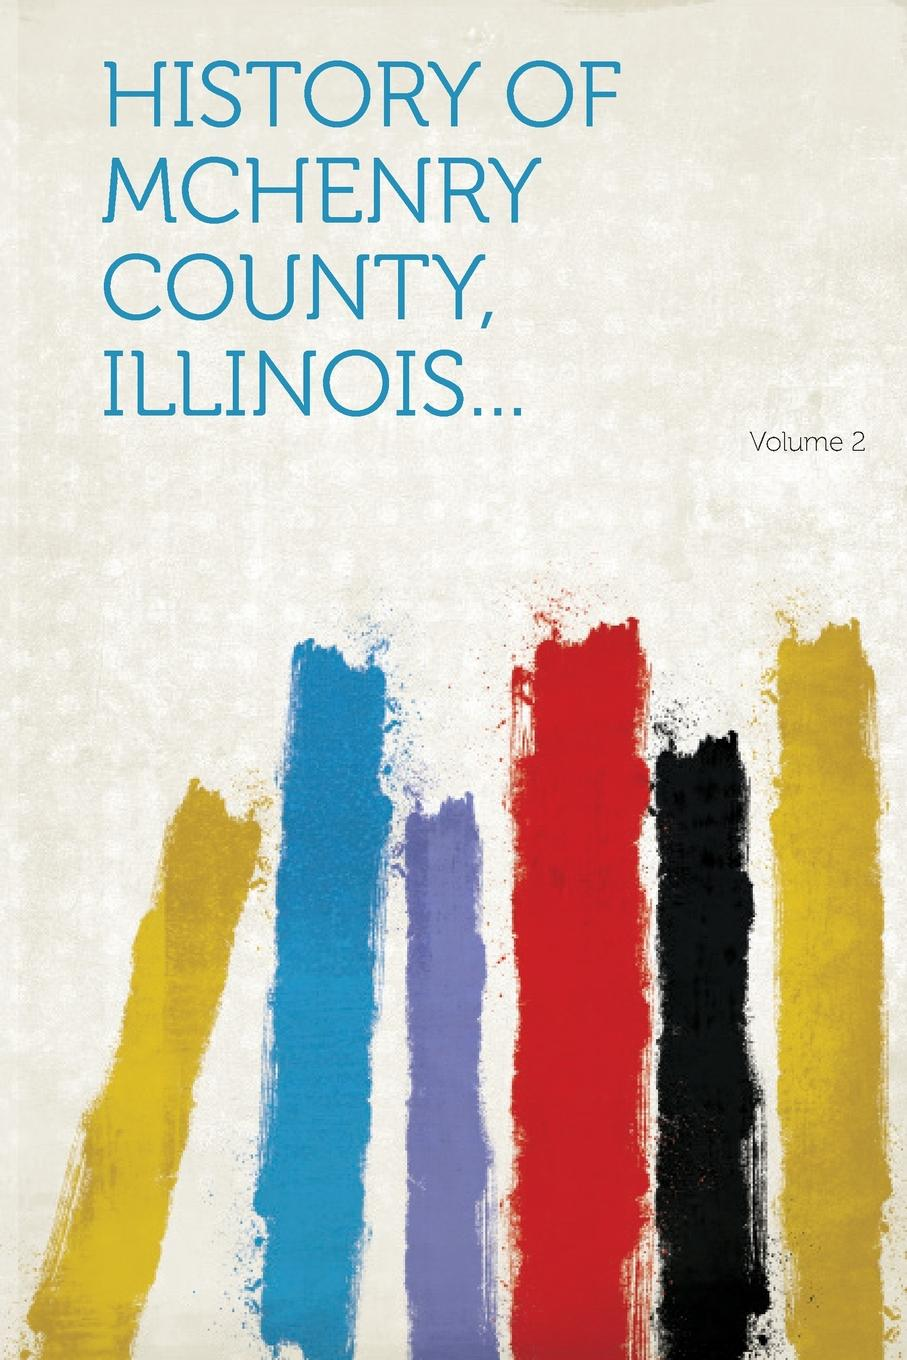 History of McHenry County, Illinois... Volume 2